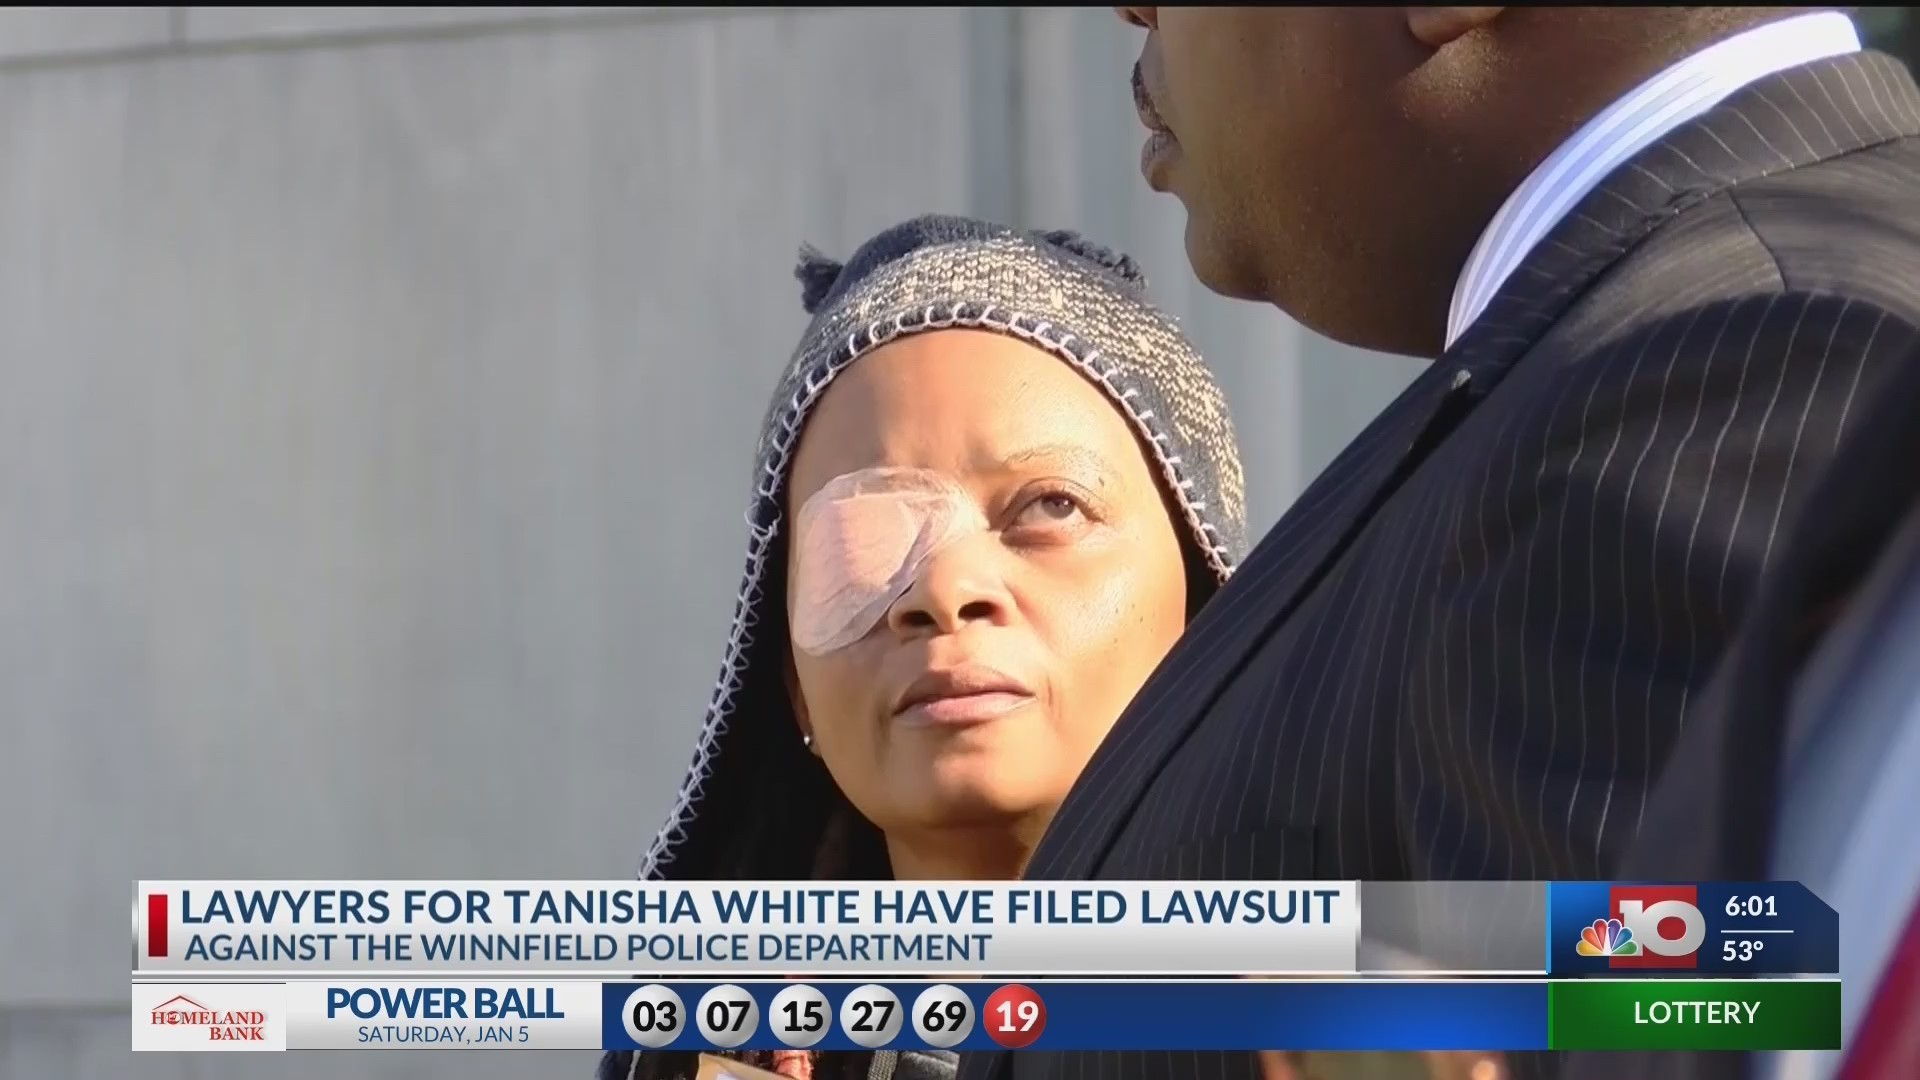 Lawyers_file_suit_in_Tanisha_White_case_0_20190111035522